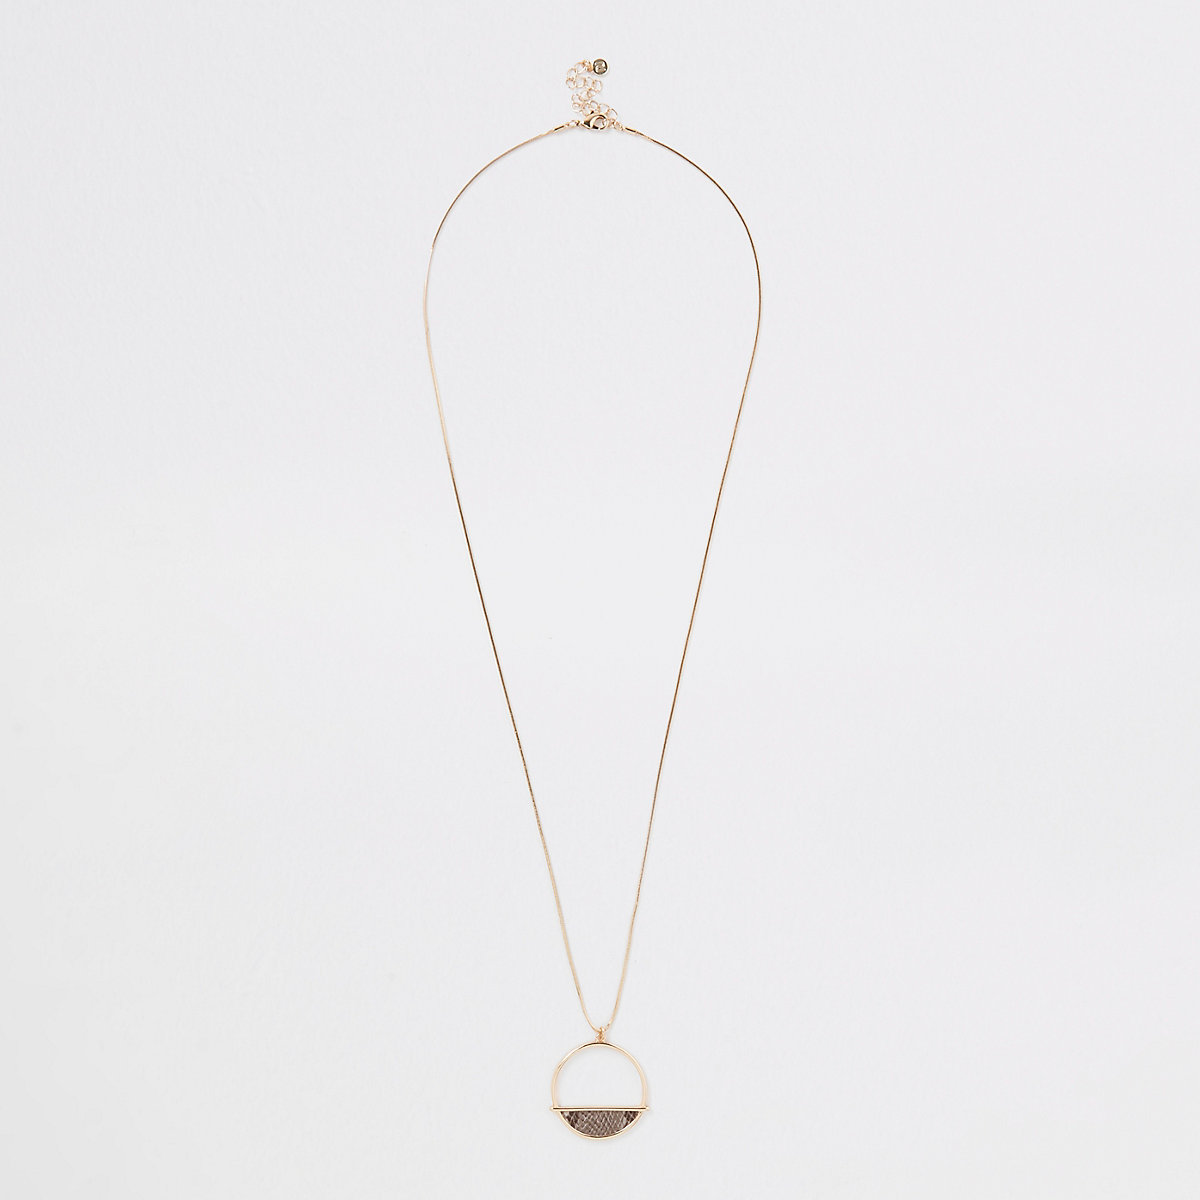 Gold tone snake chain long pendant necklace